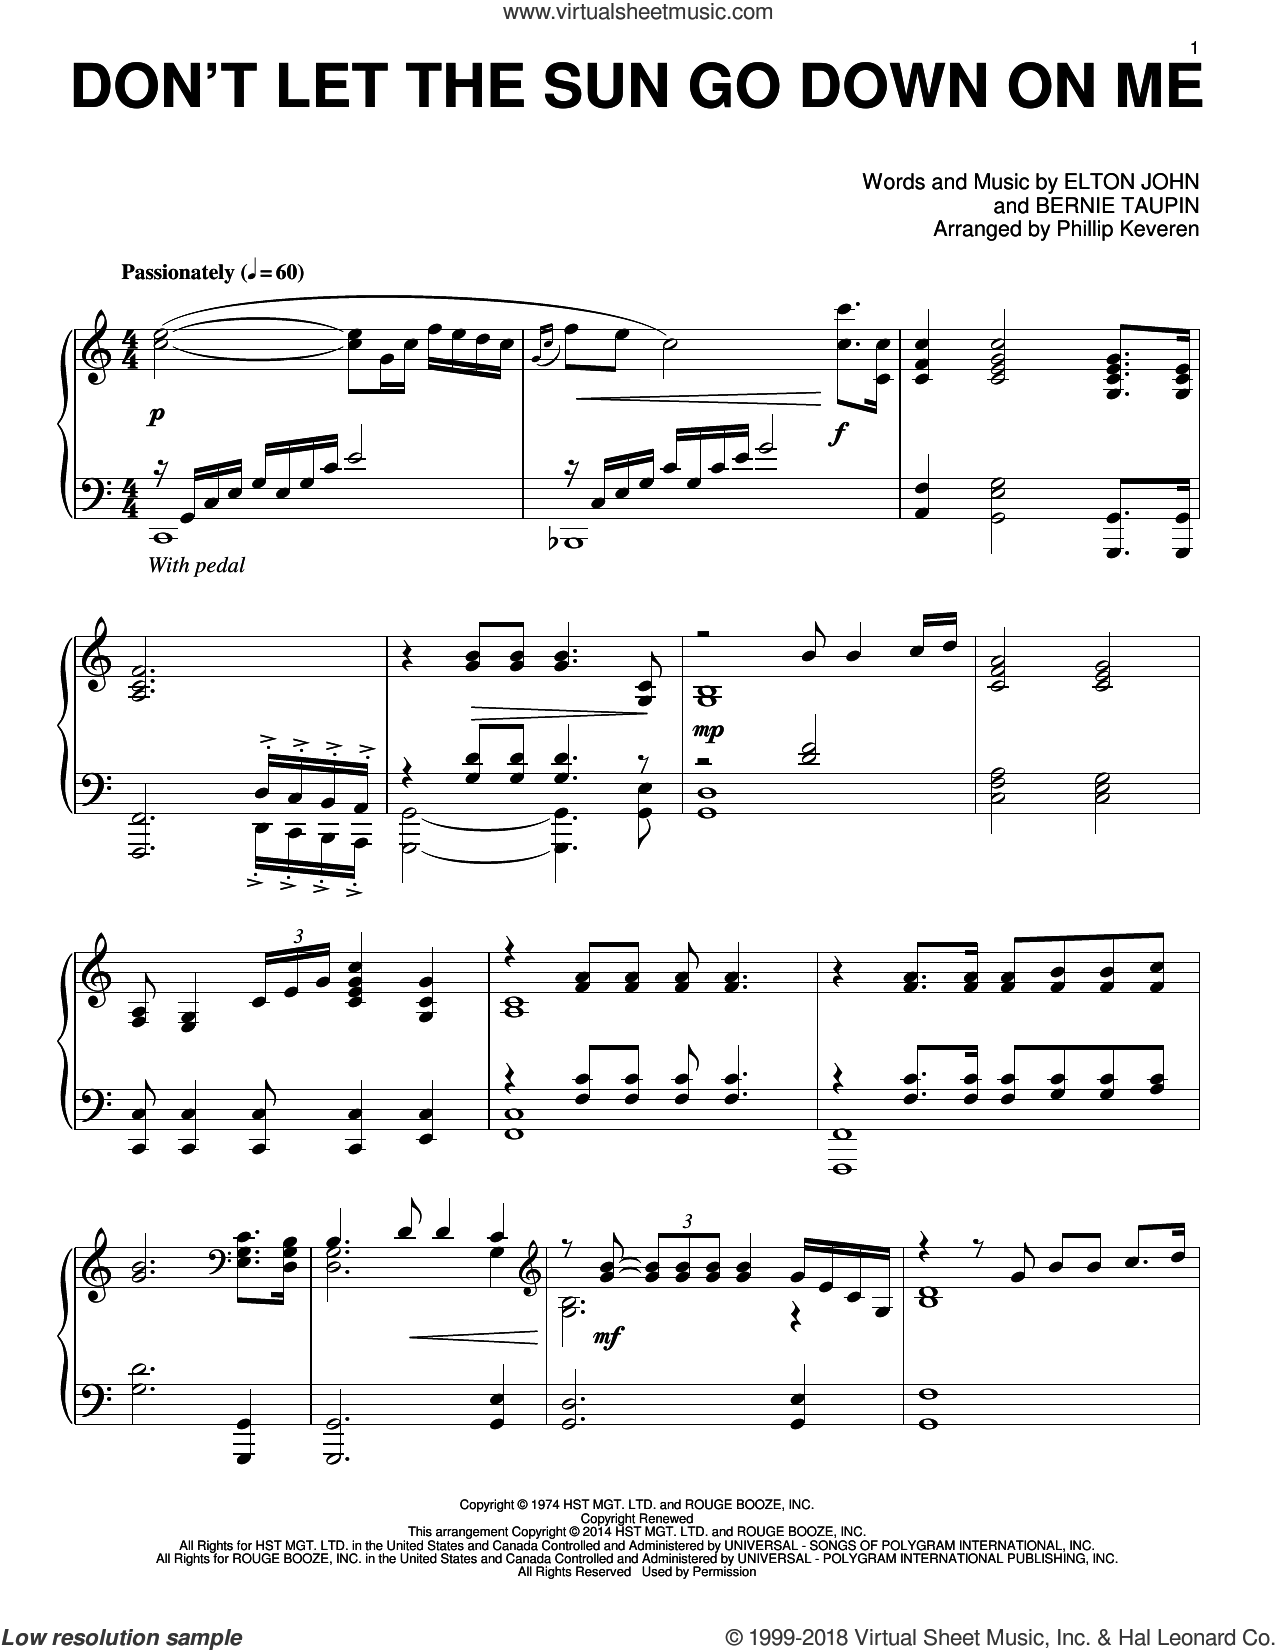 Don't Let The Sun Go Down On Me sheet music for piano solo by Phillip Keveren, Bernie Taupin, David Archuleta, Elton John and Elton John & George Michael, intermediate skill level